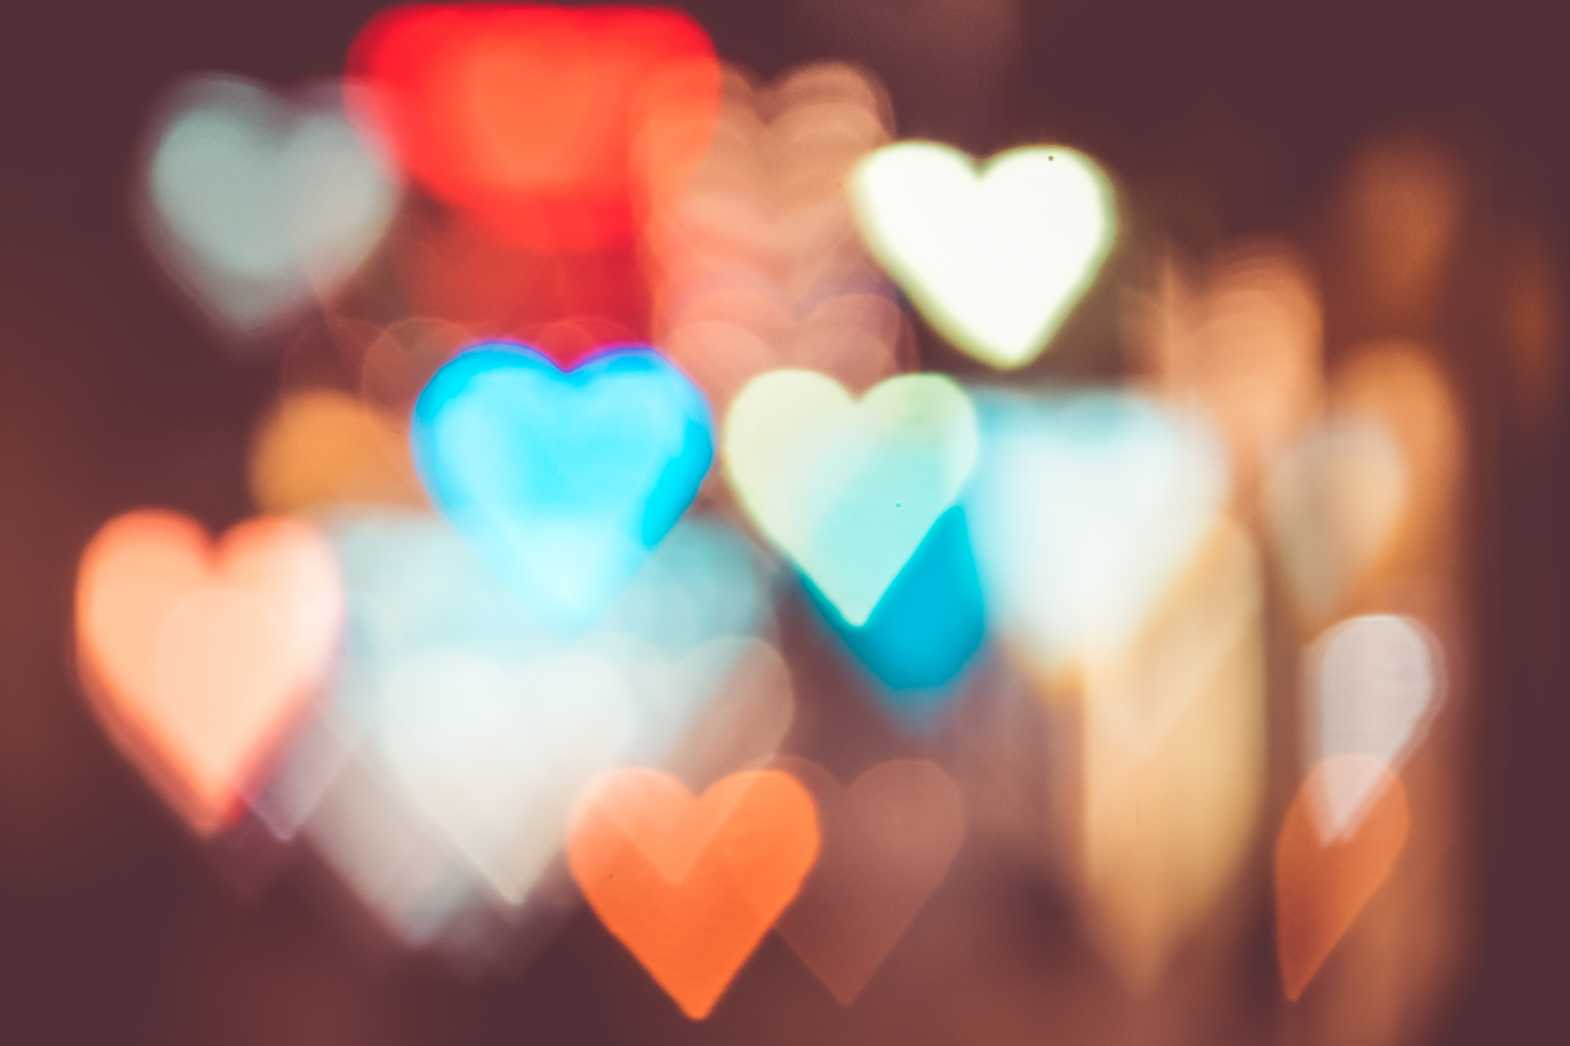 night city lights abstract heart bokeh trick free stock photos picjumbo.com  - Valentýnské fotografie zdarma – picjumbo.com